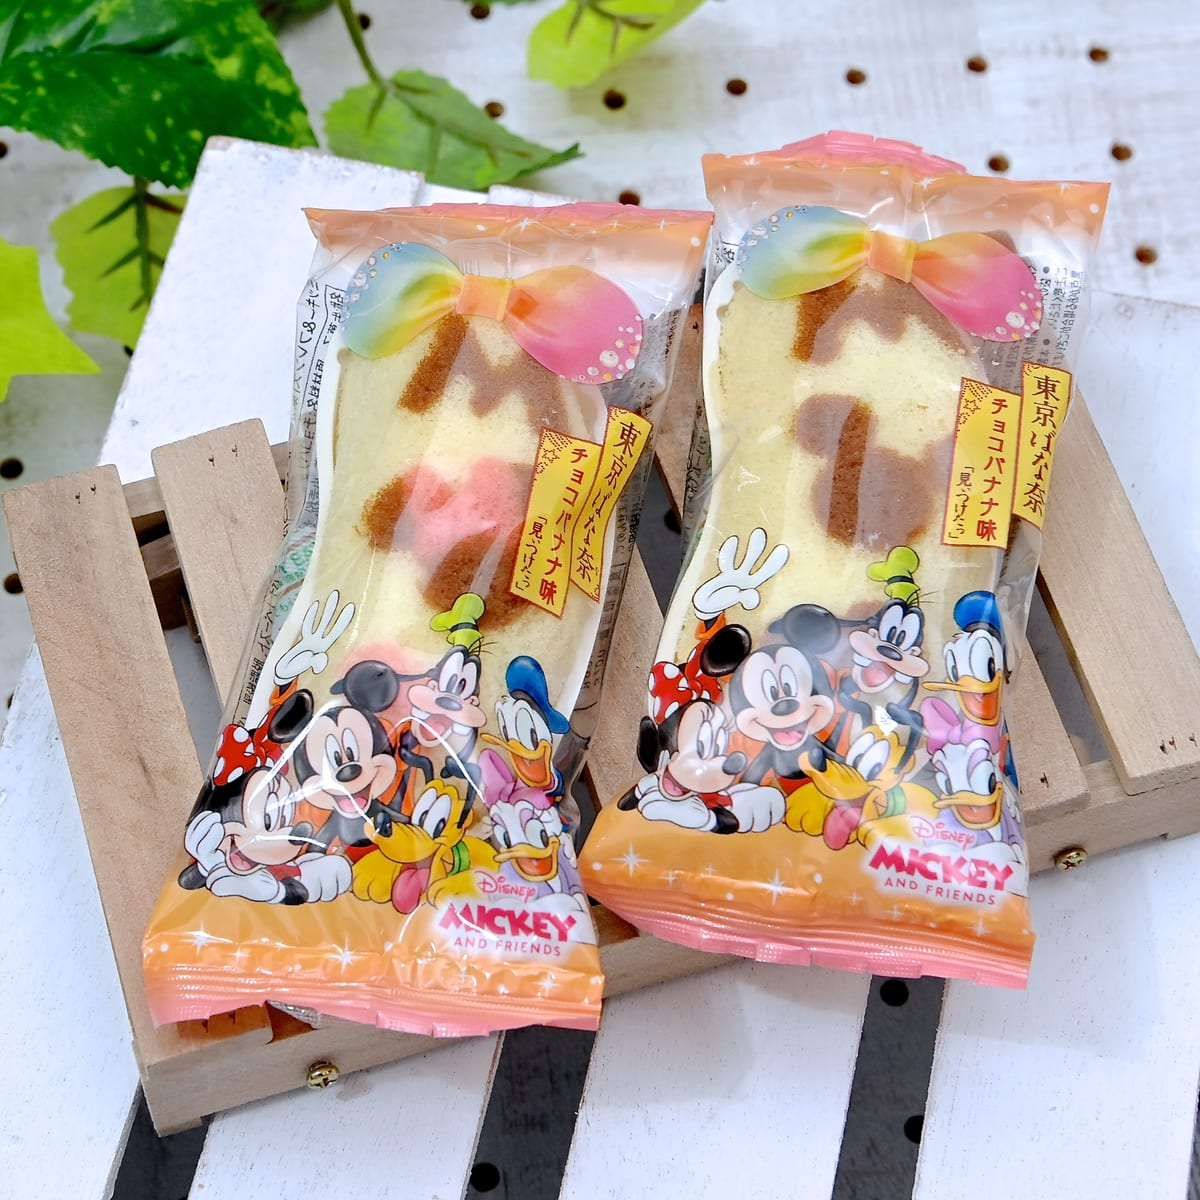 「Disney SWEETS COLLECTION by 東京ばな奈」パッケージ個包装